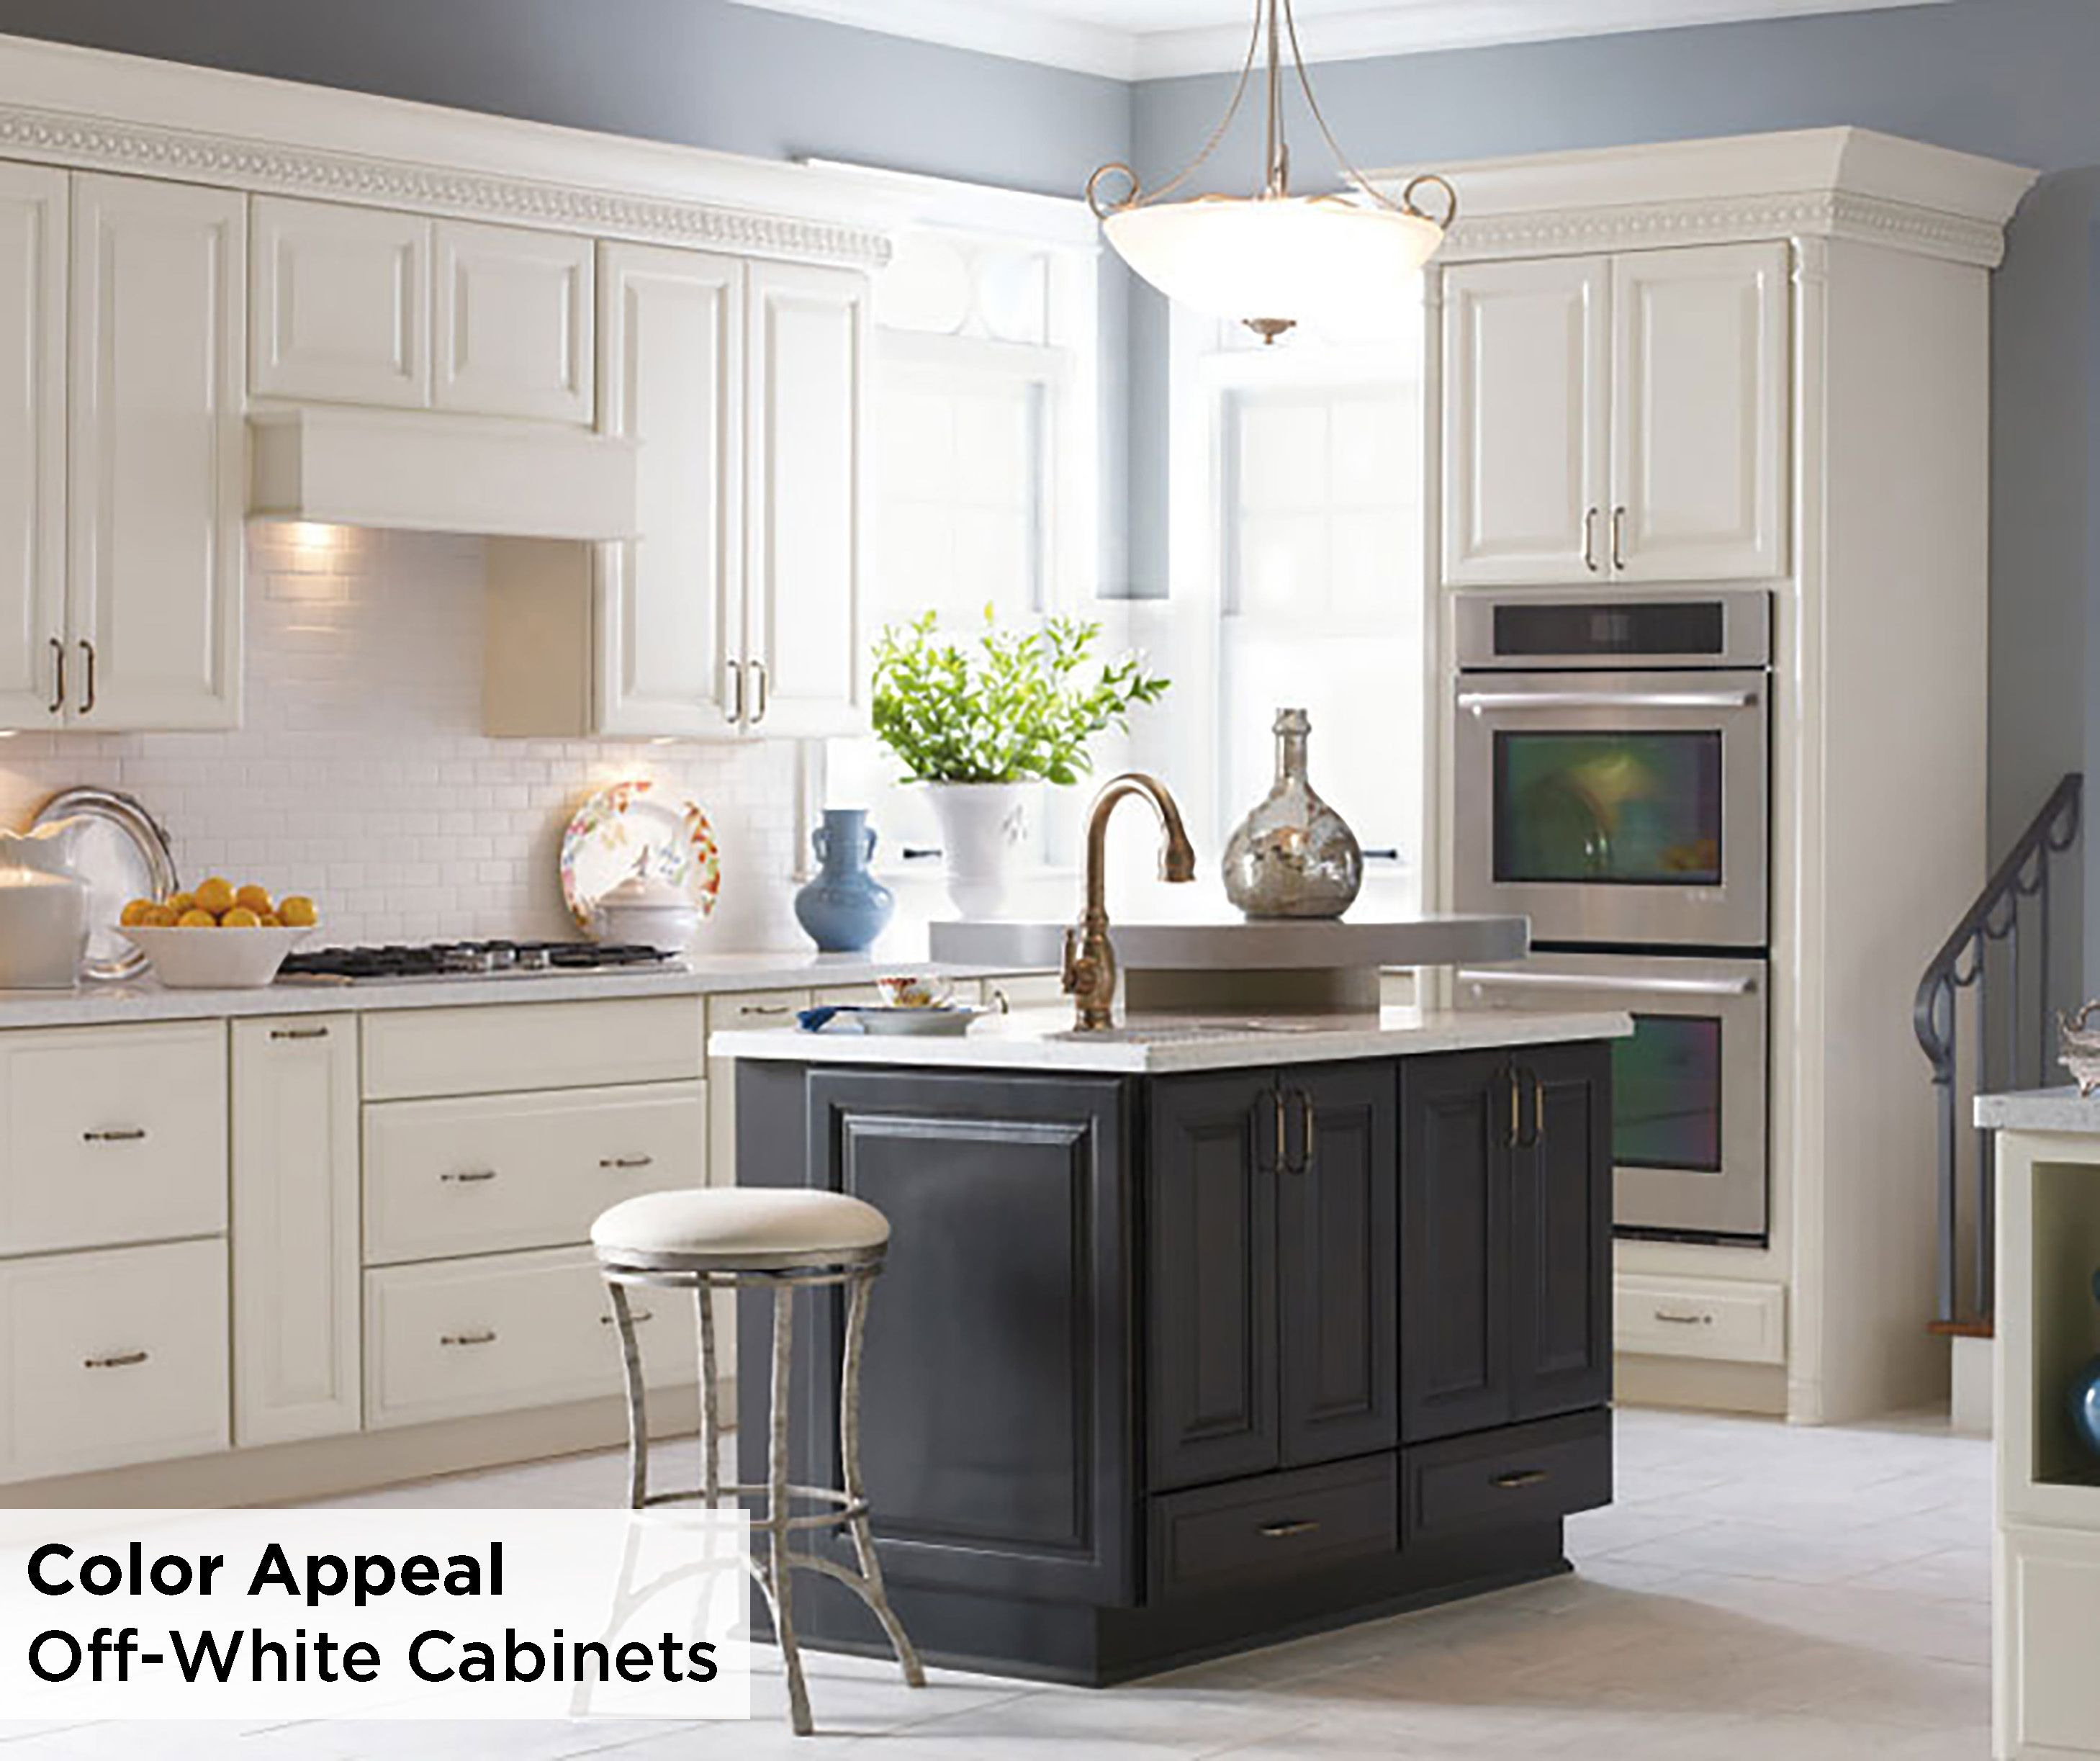 While White Kitchens May Be A Fan Favorite These Off White Diamond Maple Sullivan Cabinets W Off White Kitchens Grey Kitchen Island Off White Kitchen Cabinets